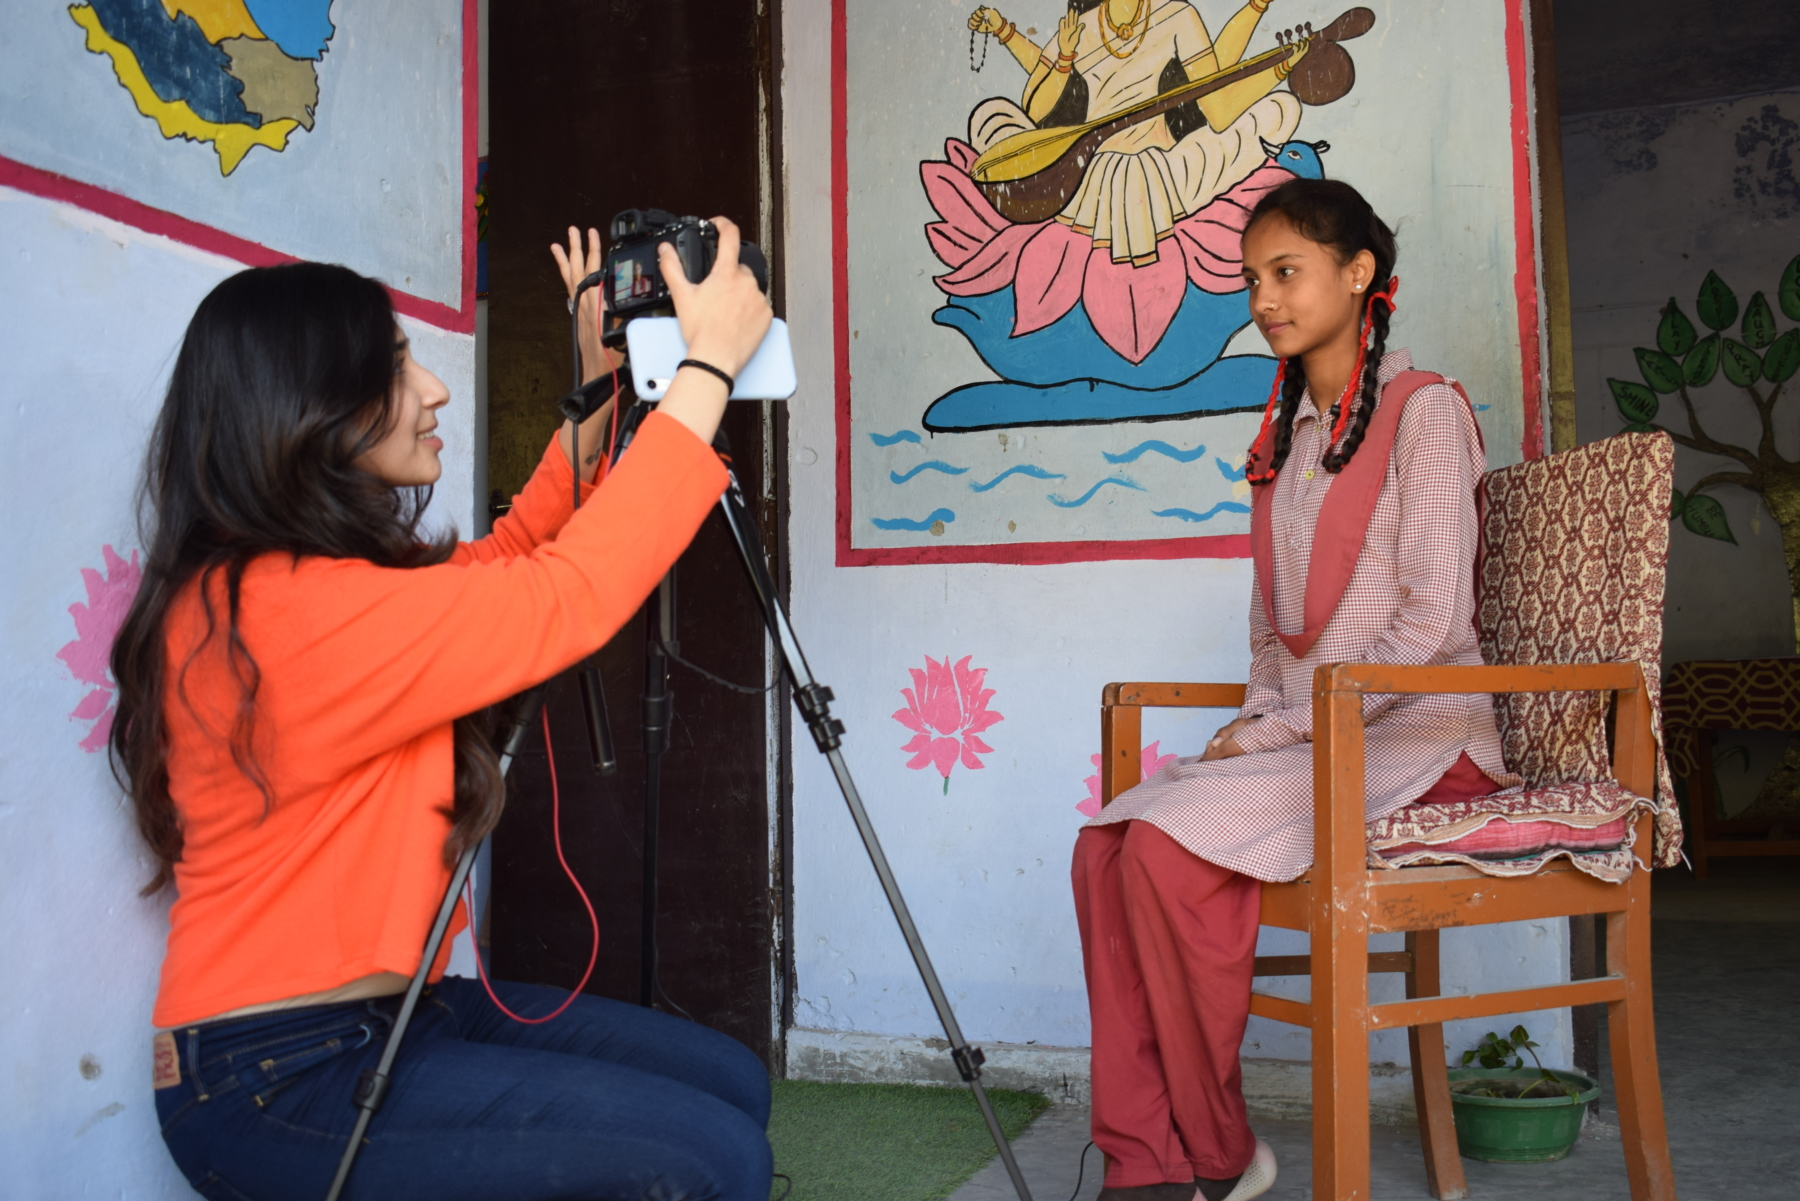 An interview with one of the students from a local Dehradun school.